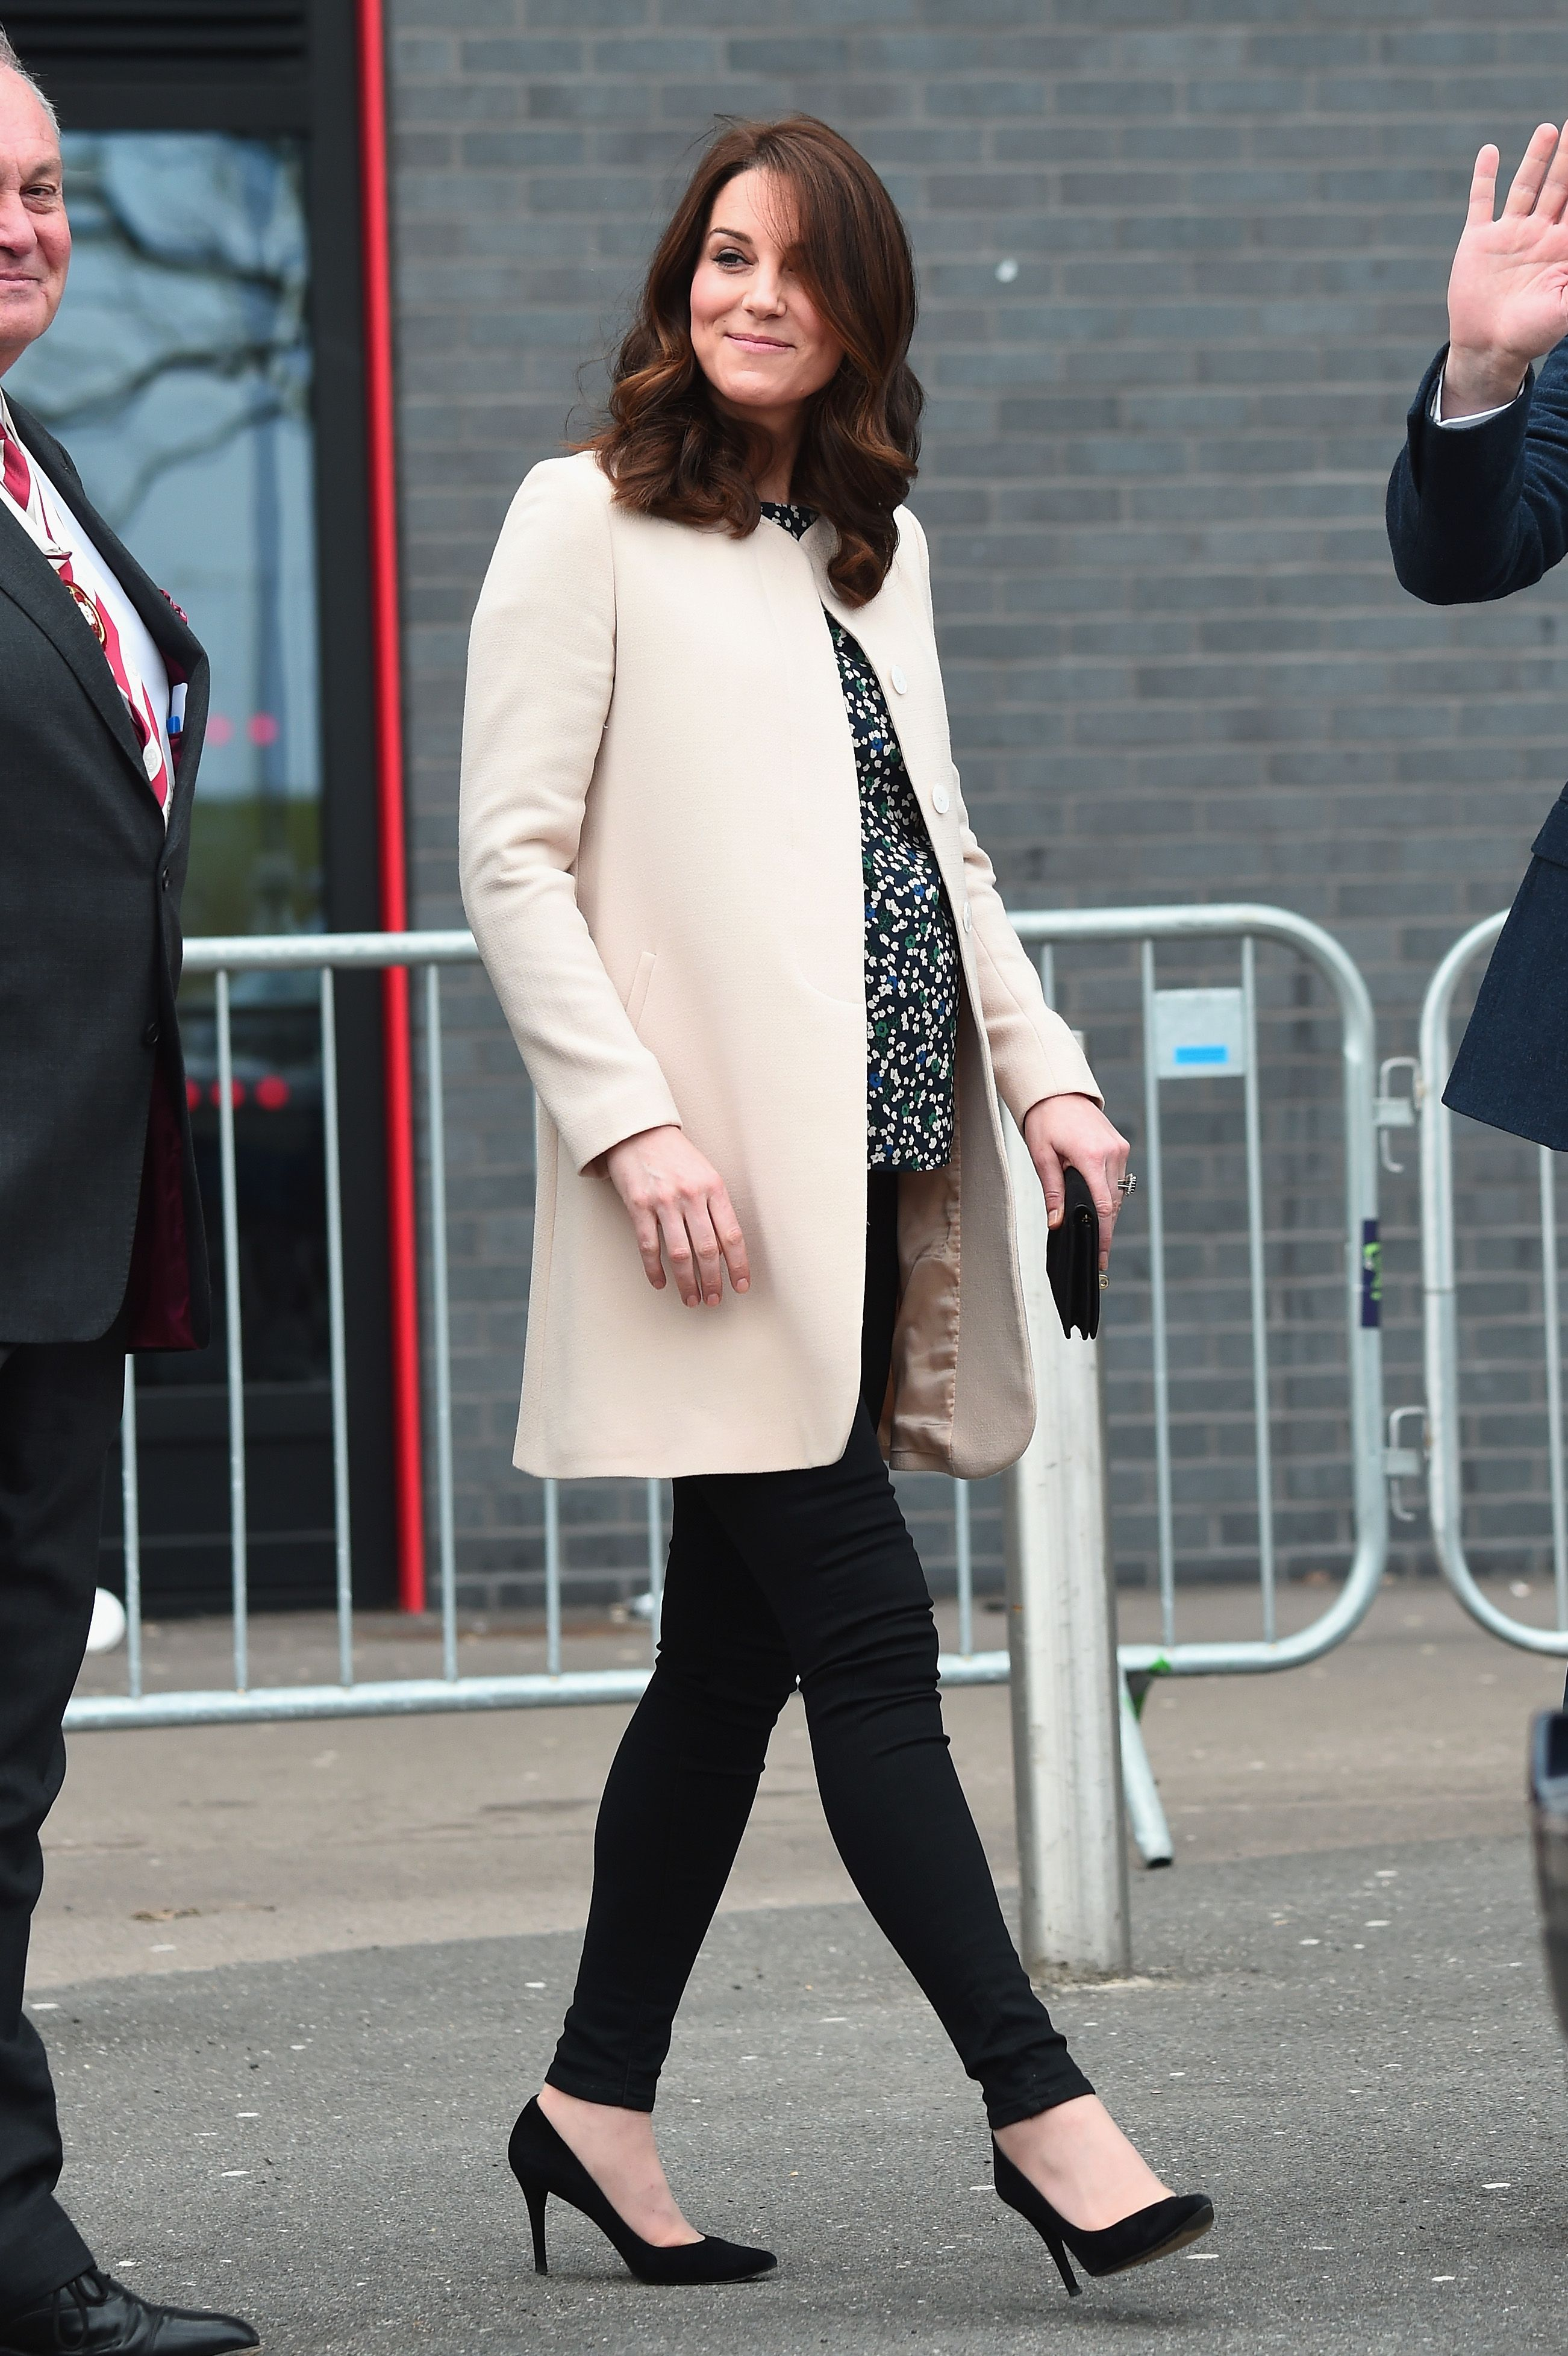 a39dc315c0d Kate Middleton s Most Controversial Royal Moments - Kate Middleton  Controversy Timeline